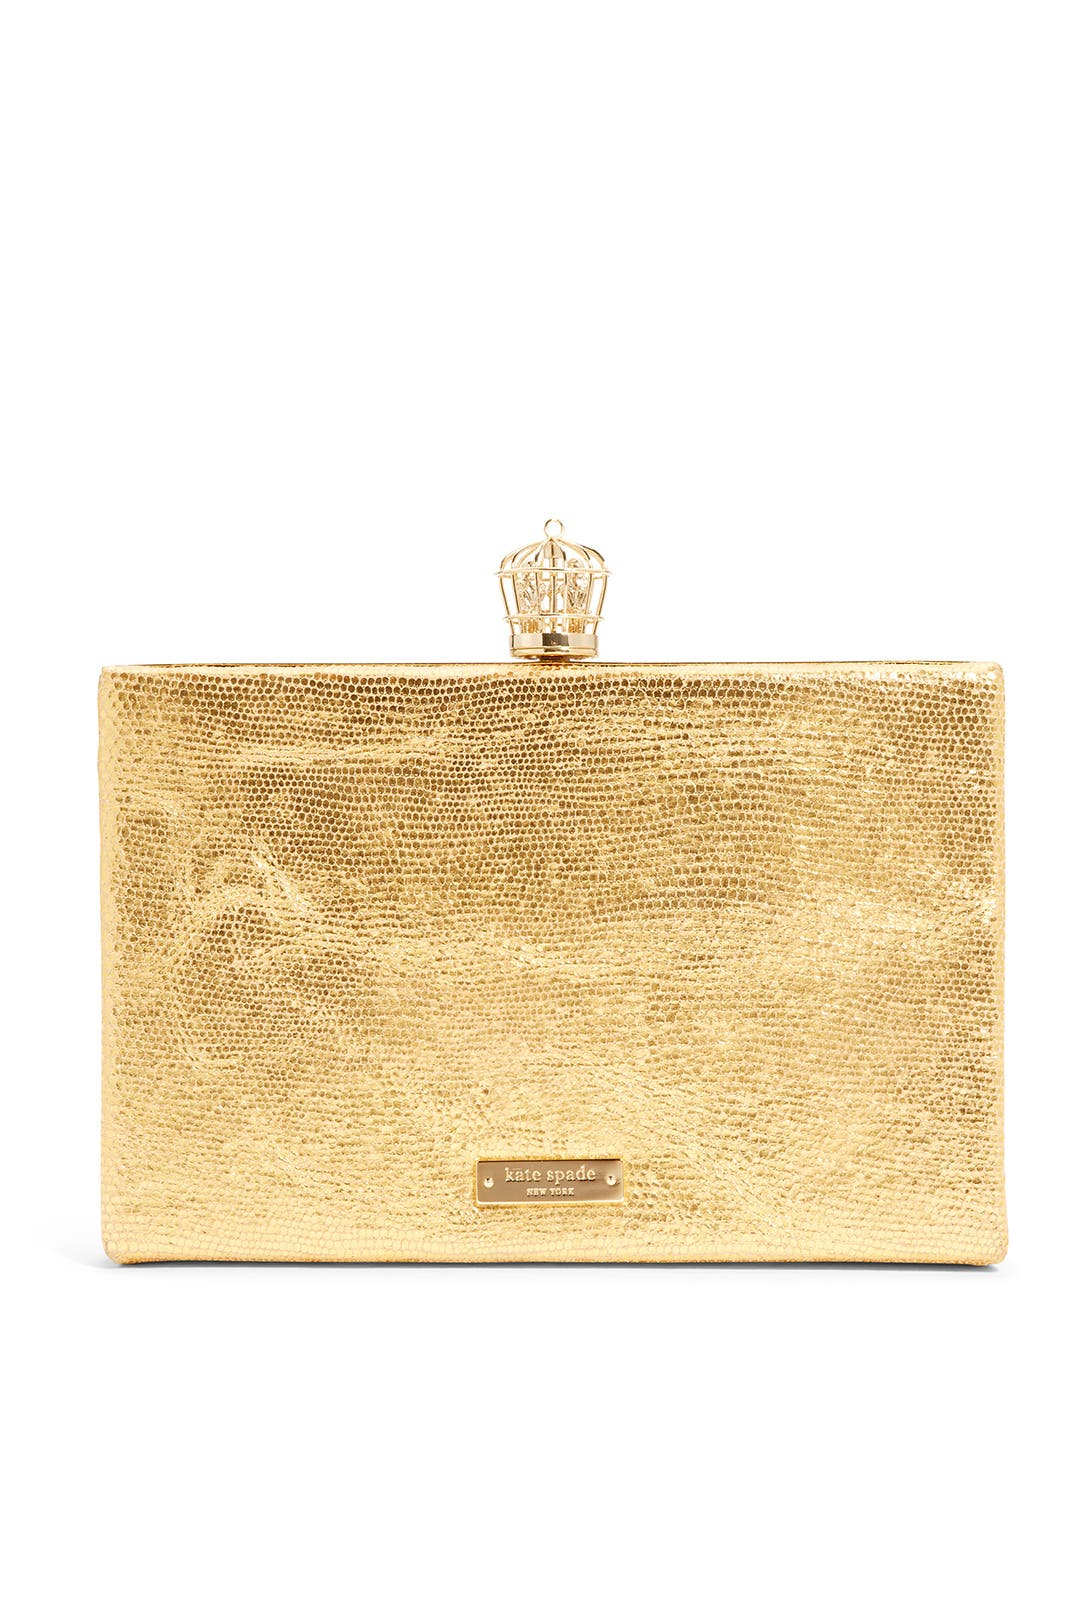 Song Bird Emanuelle Clutch by kate spade new york accessories